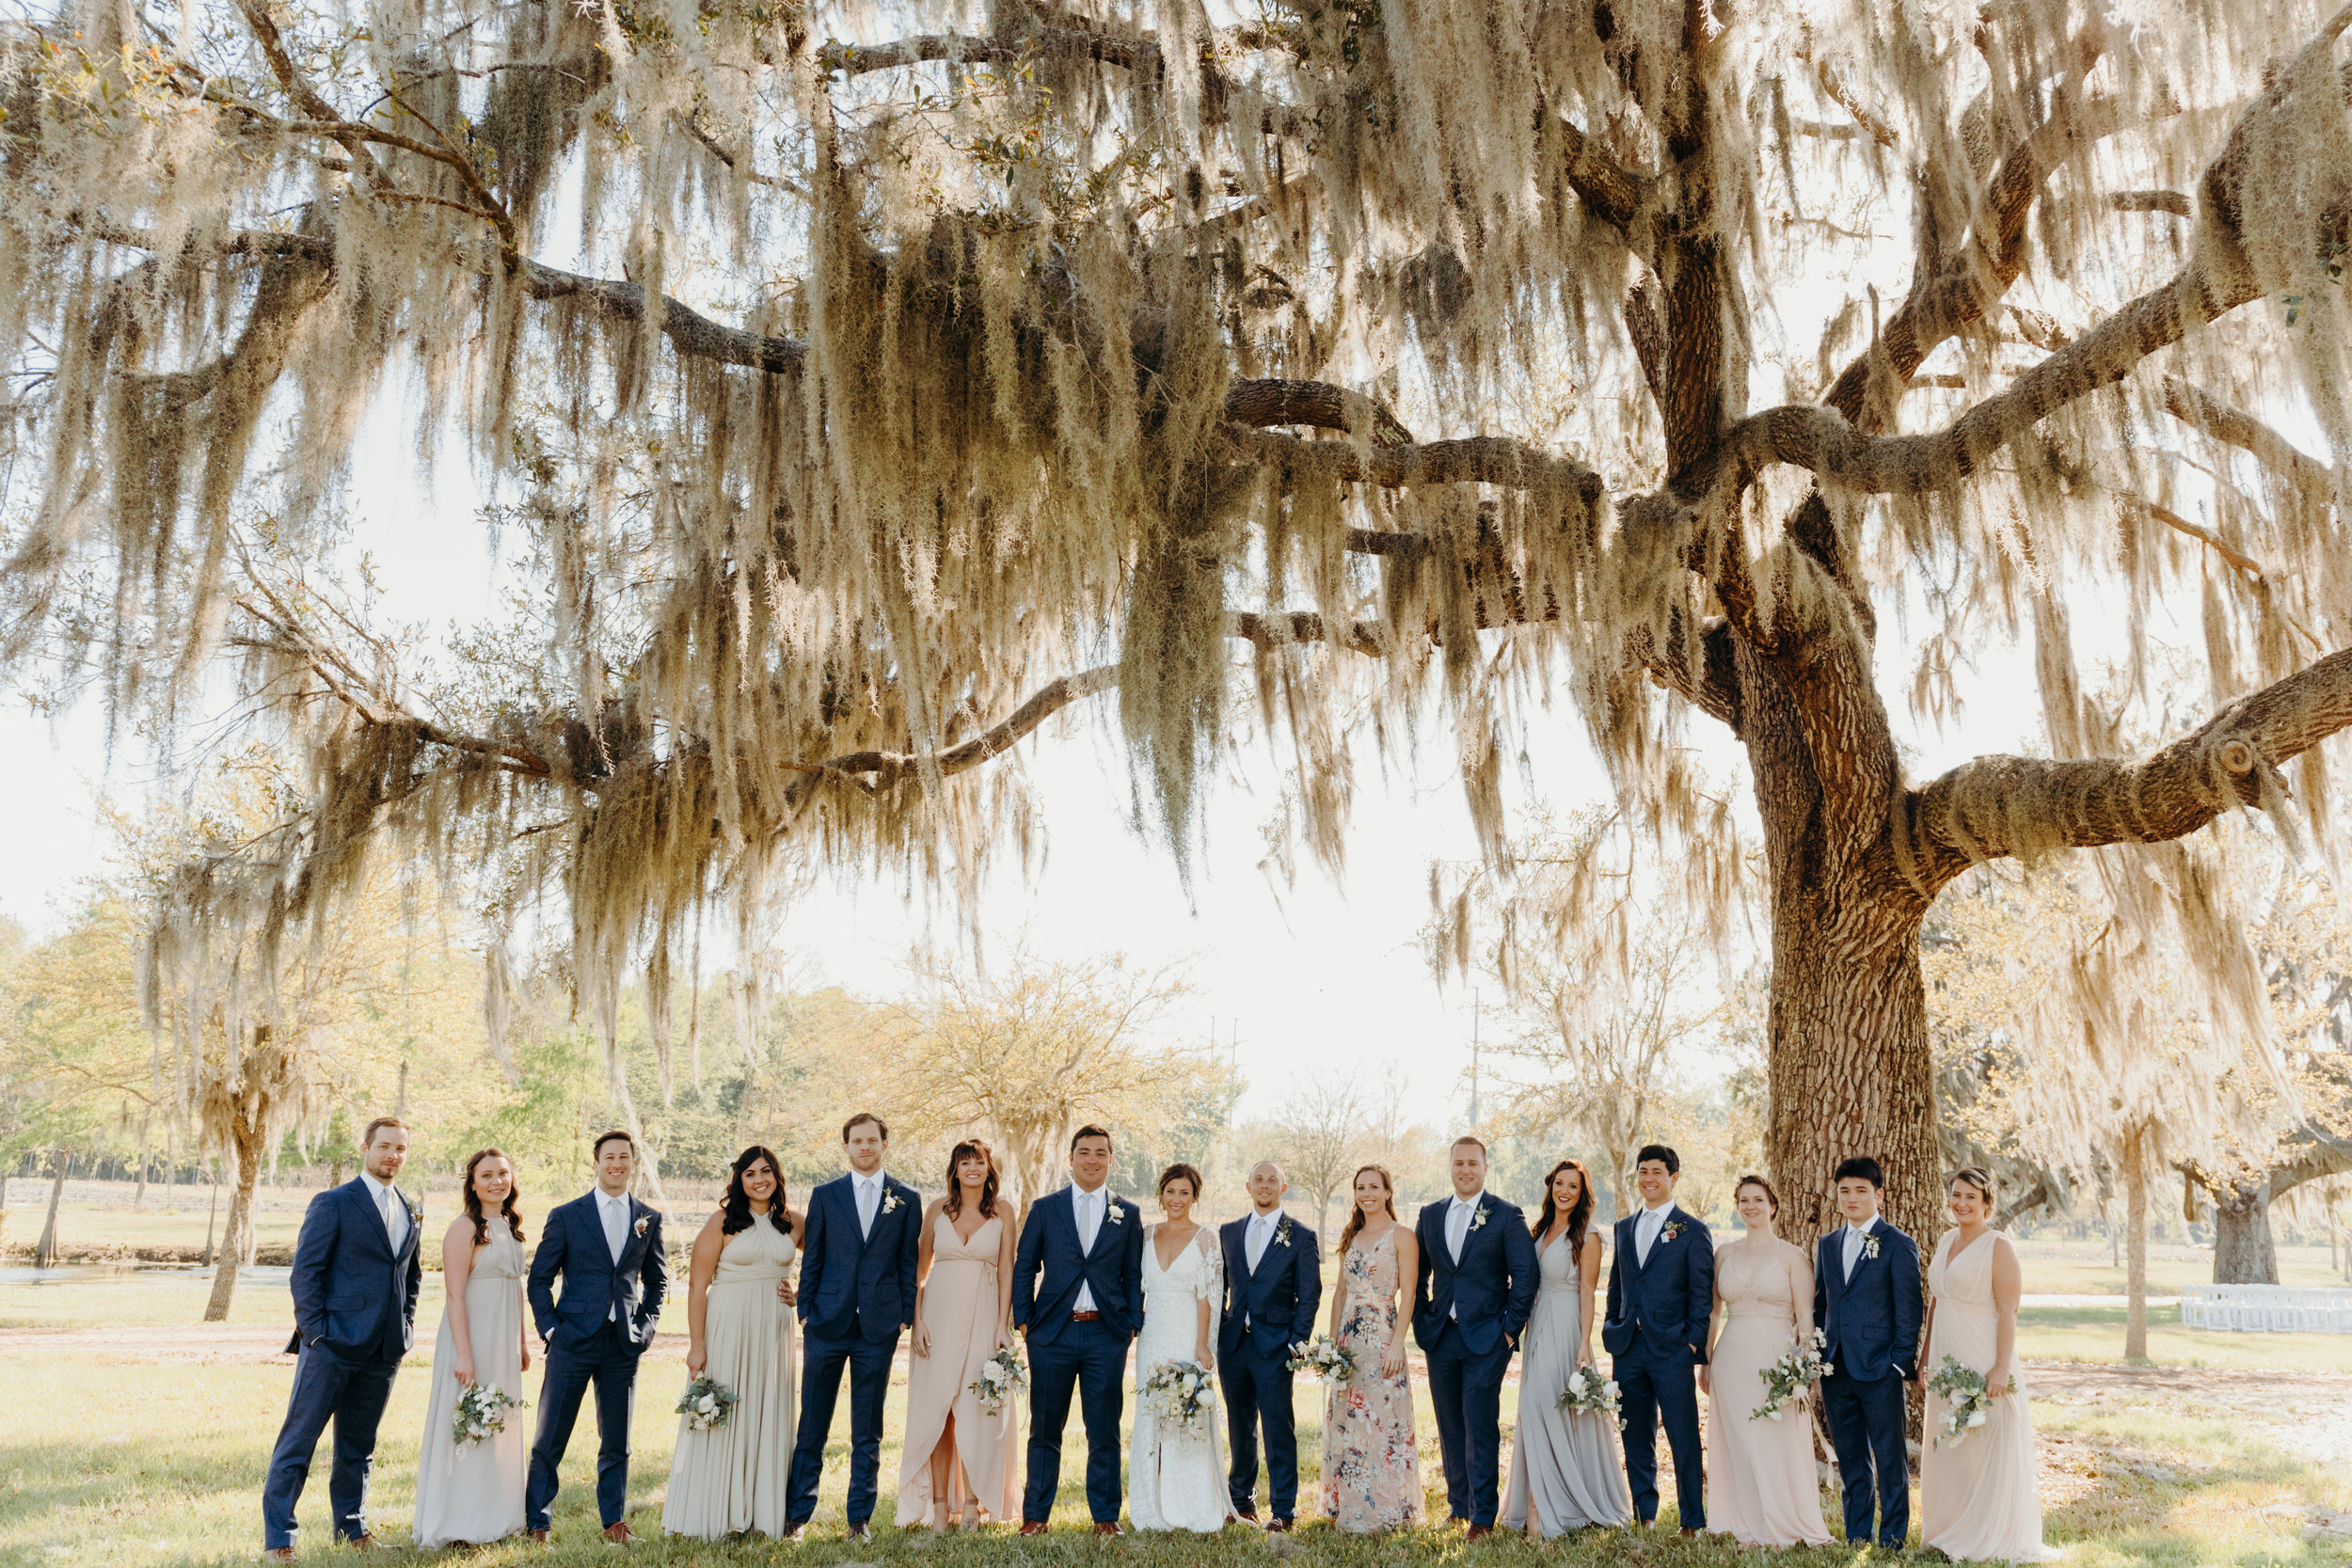 Wedding Party  Wedding   Chris and Kristen   congaree and penn   Jacksonville florida  Documented by Vanessa Boy (234 of 142).jpg